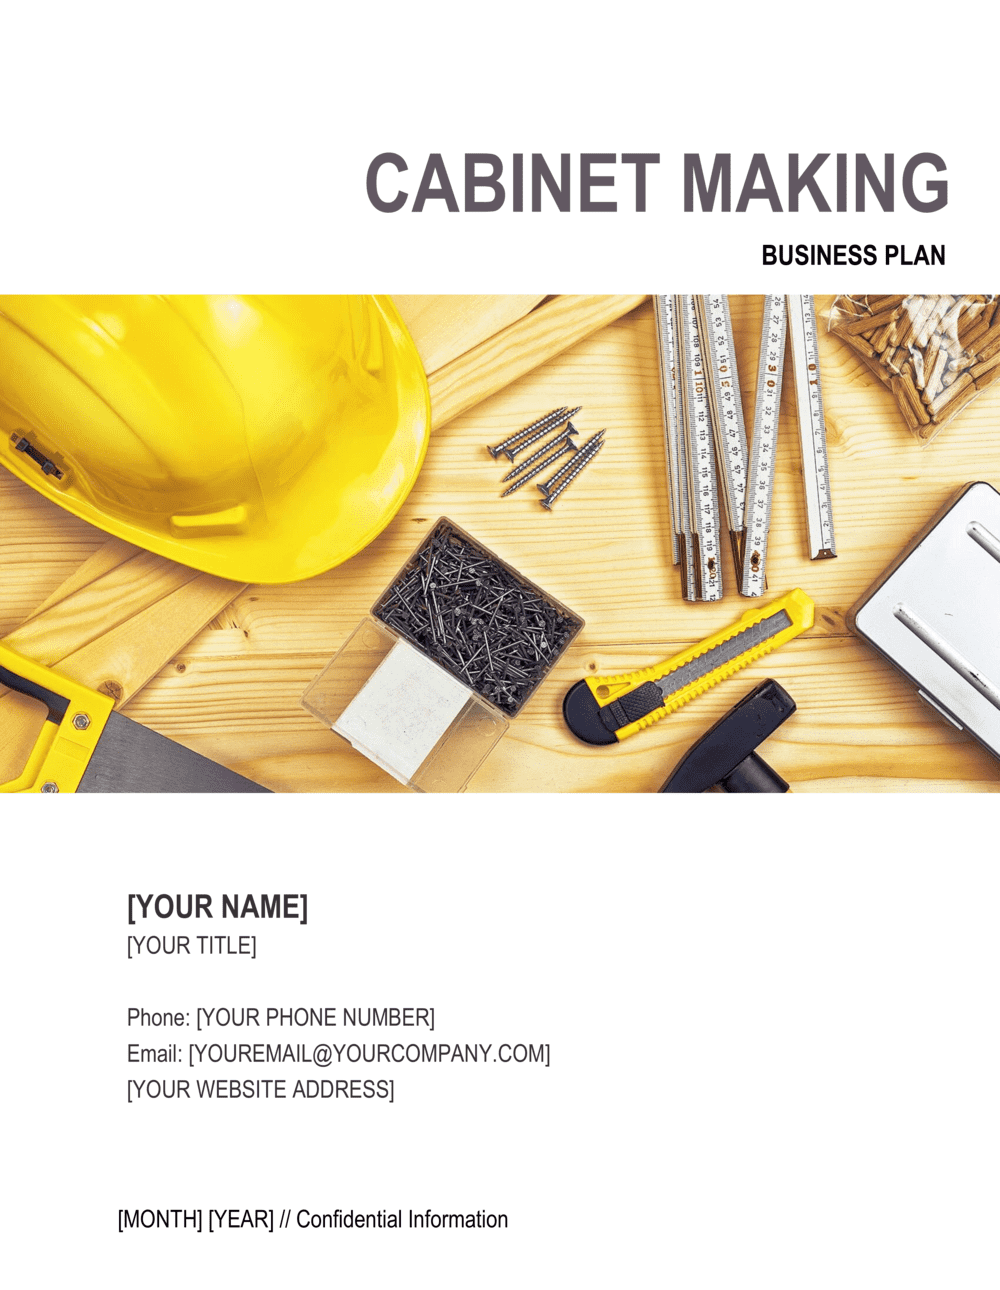 Business-in-a-Box's Cabinet Making Business Plan Template